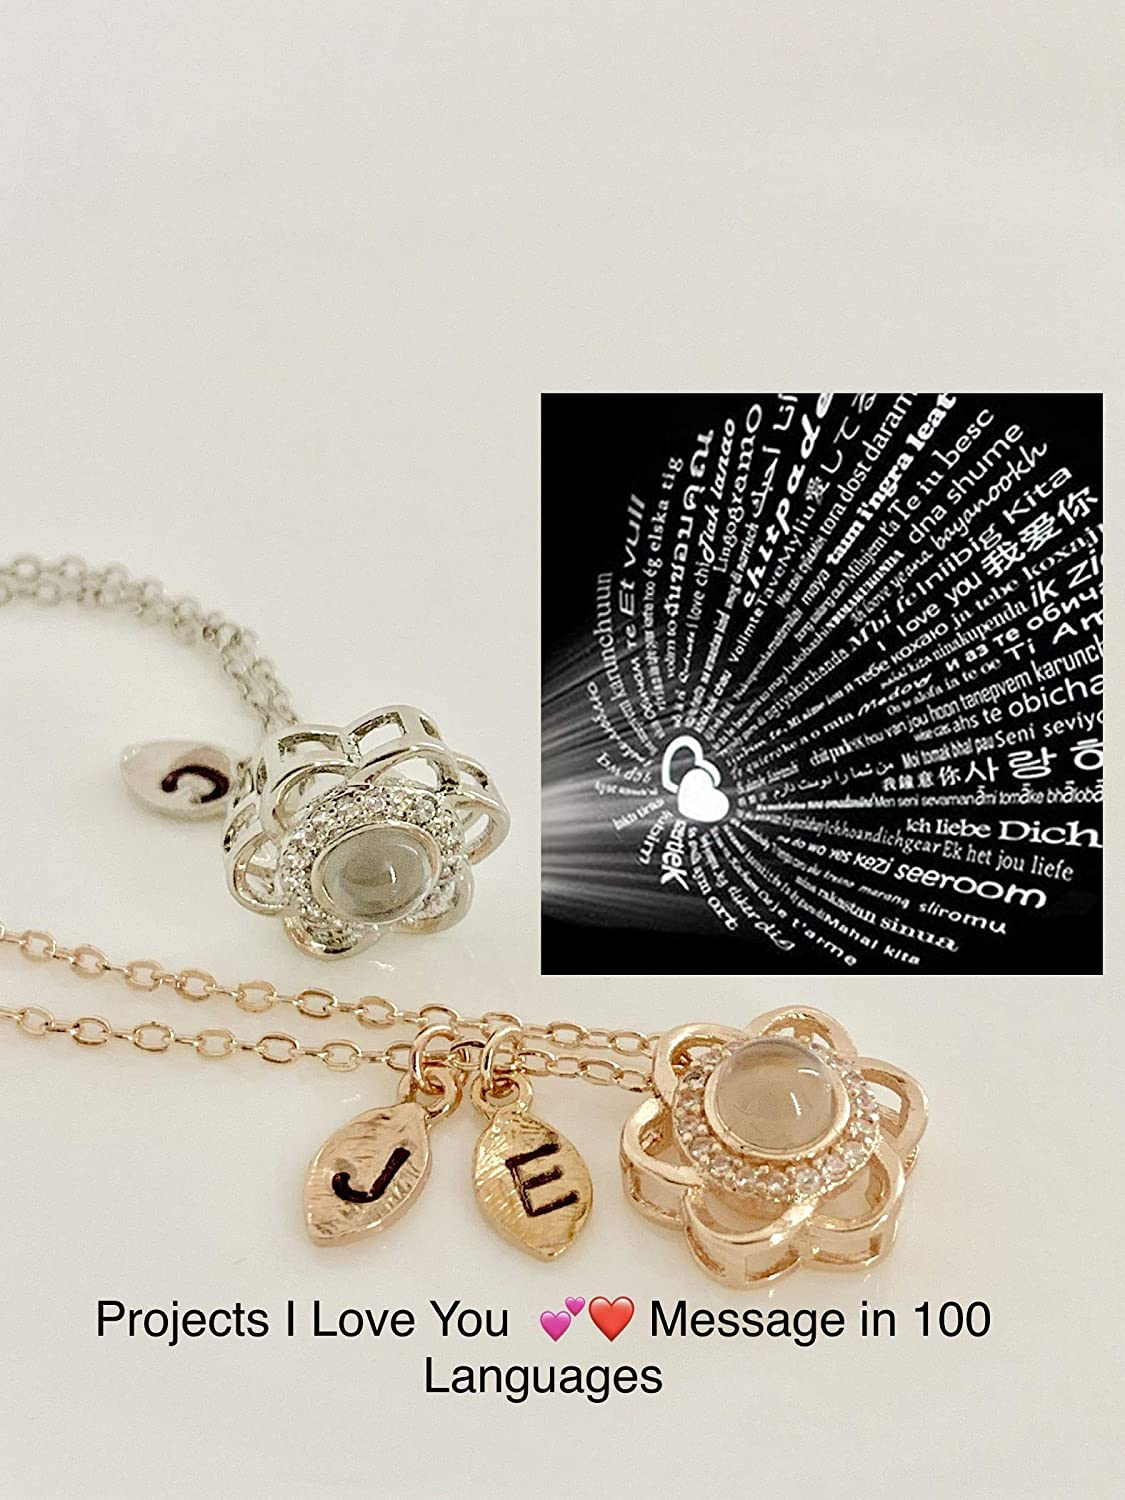 Mothers Day Jewelry Customized Photo Necklace I Love You 100 Languages Gift for Mom from Son Daughter Custom Projection Locket